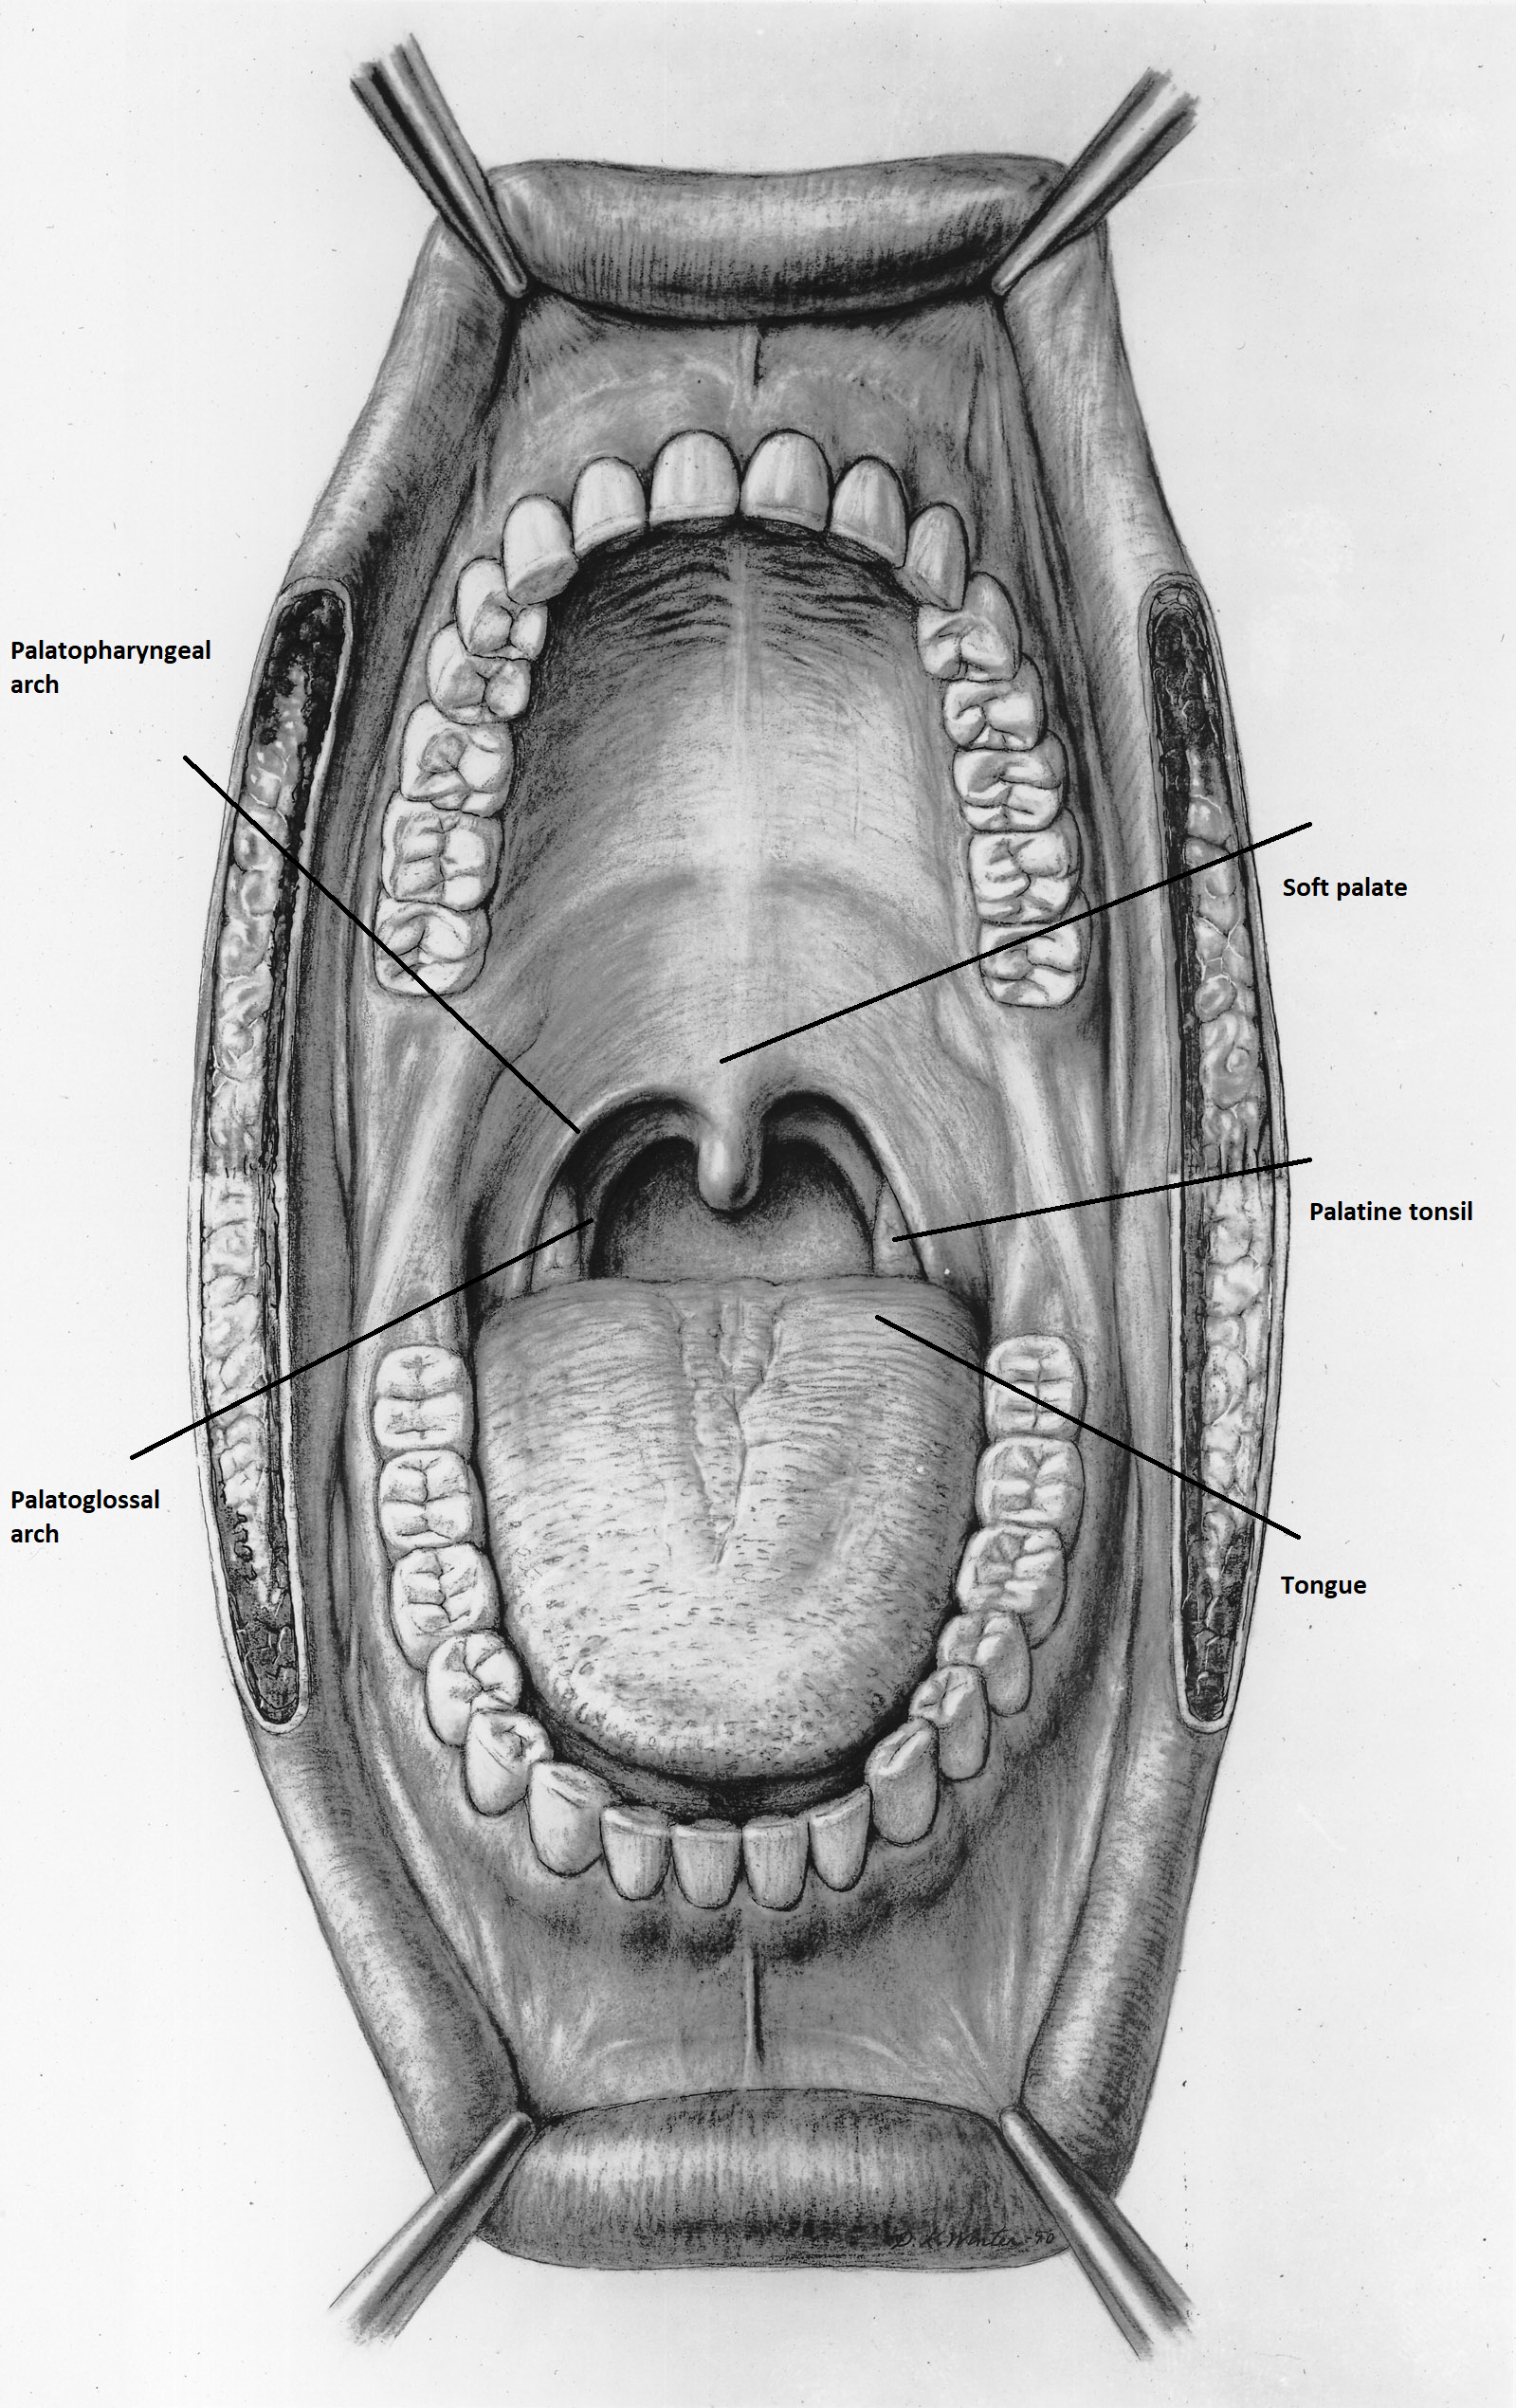 hpv positive base of the tongue cancer